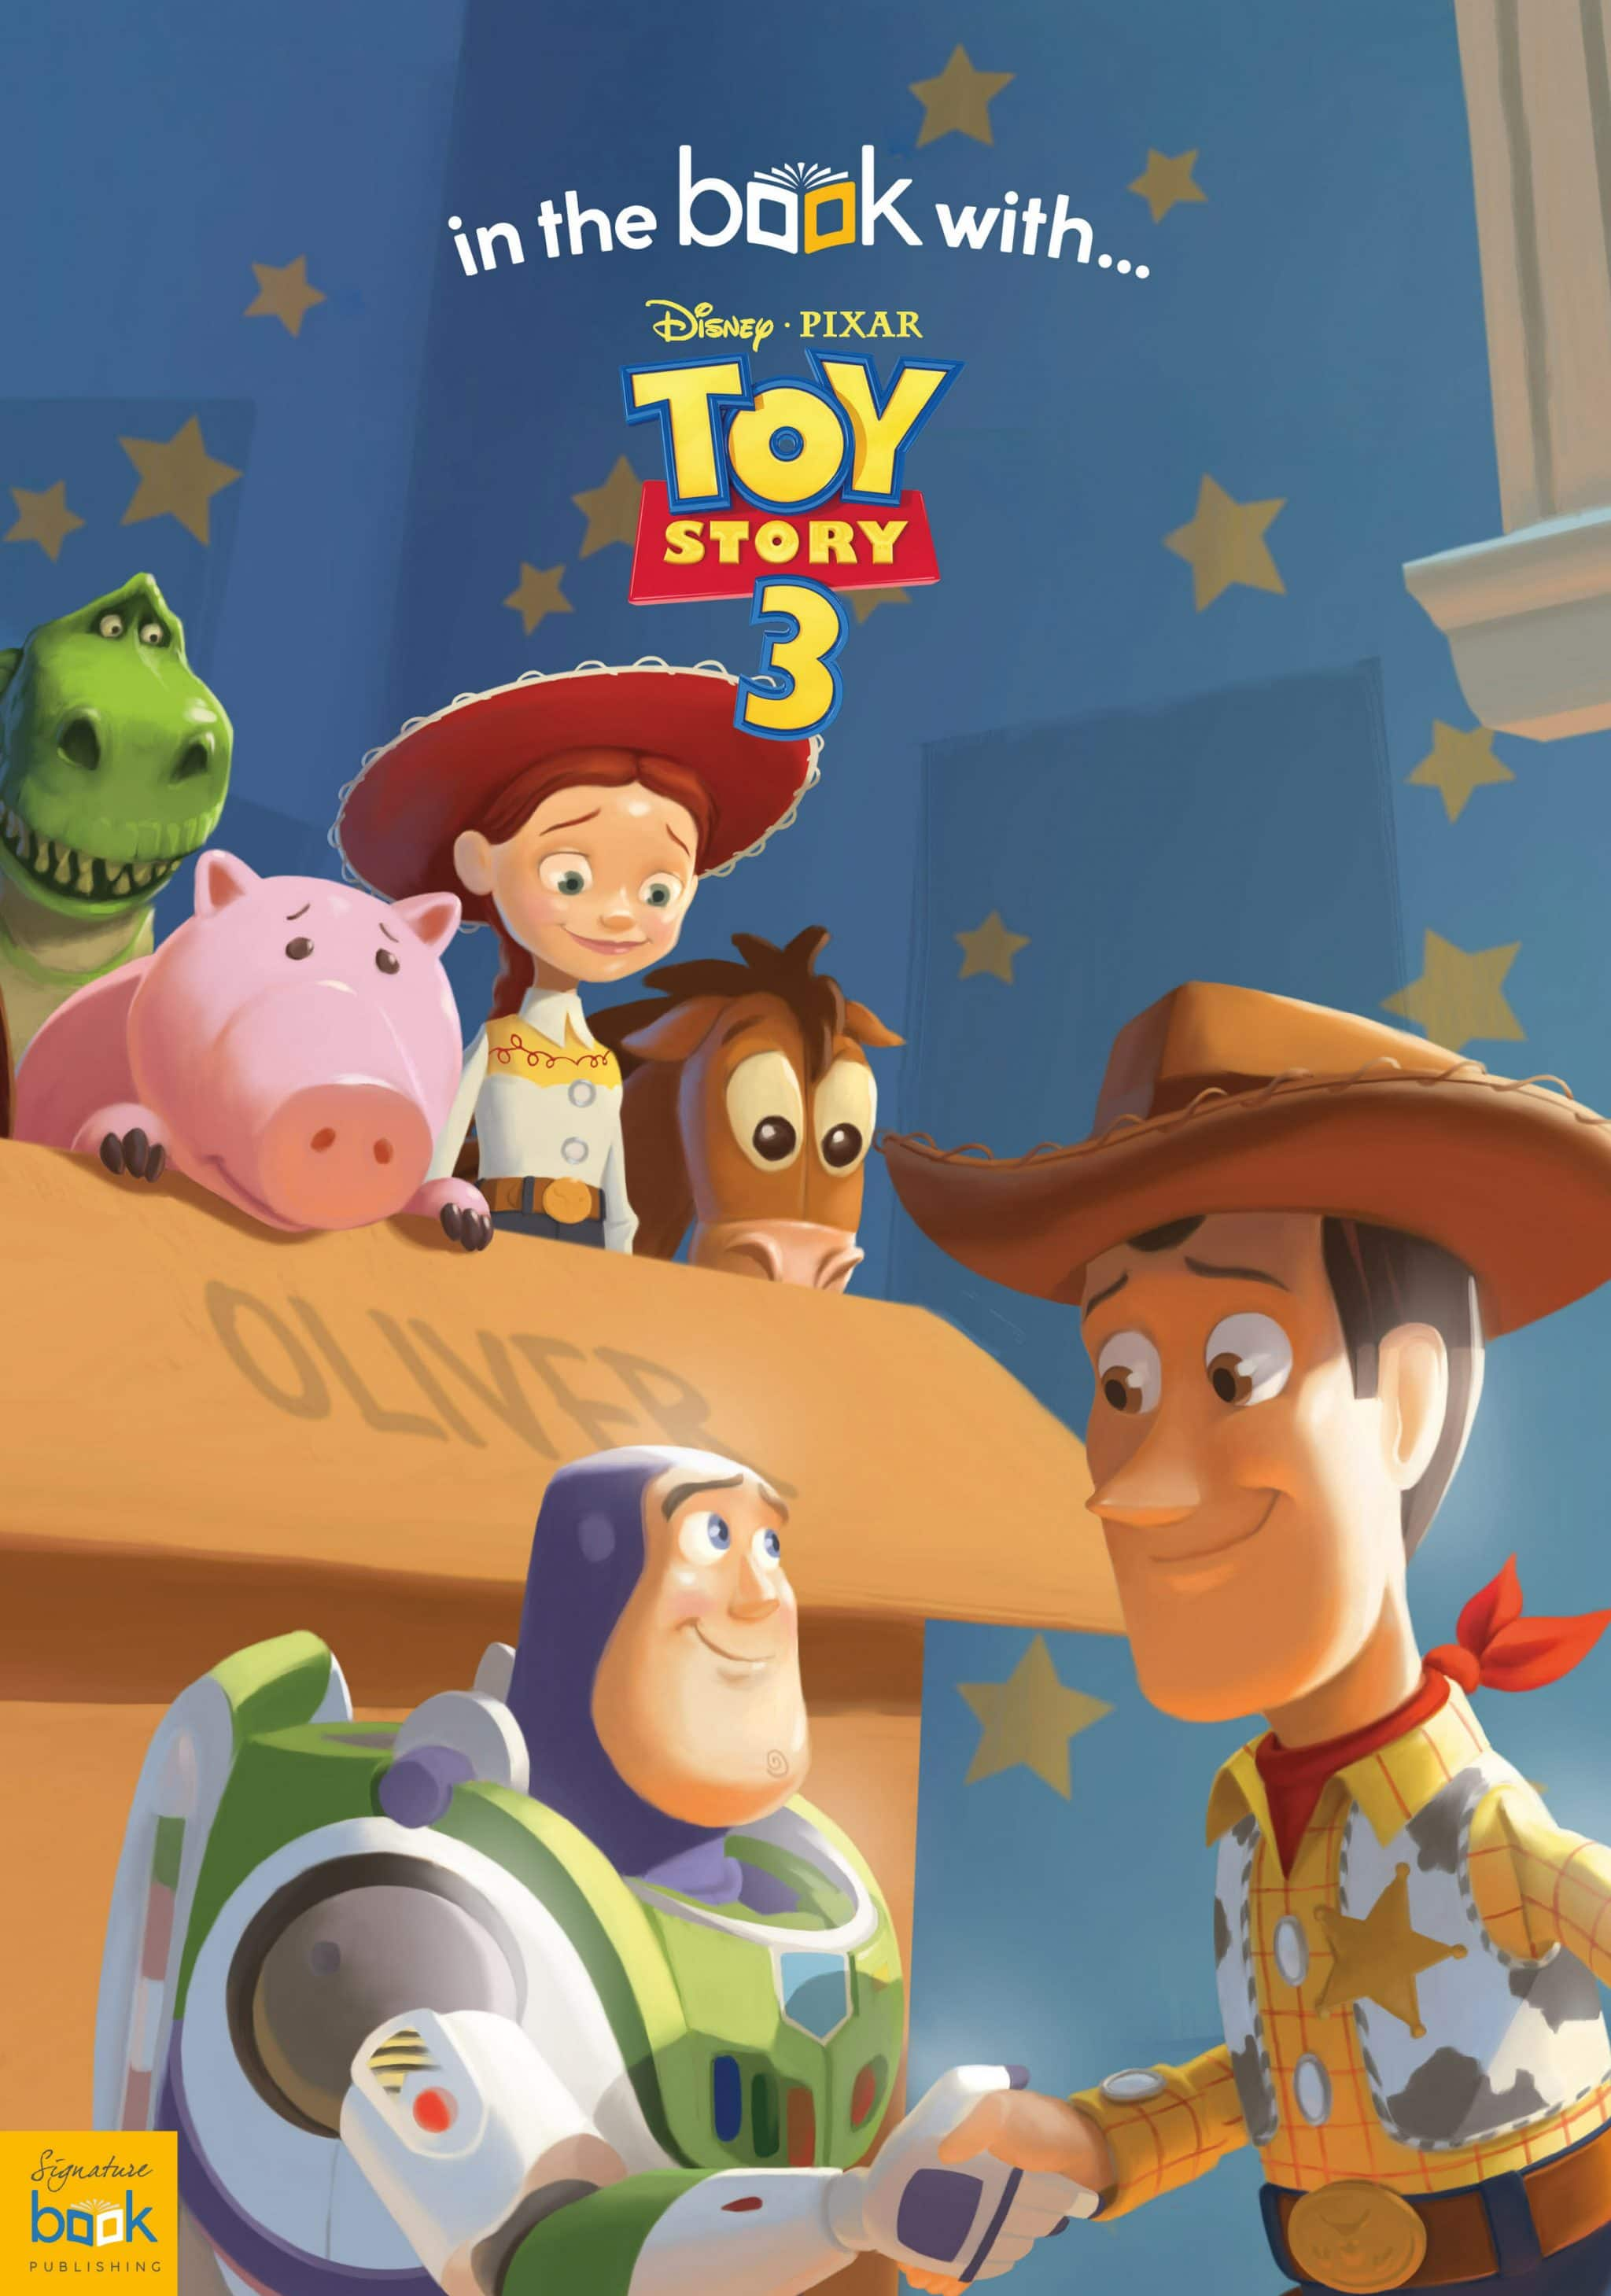 personalized disney toy story 3 story book signature gifts